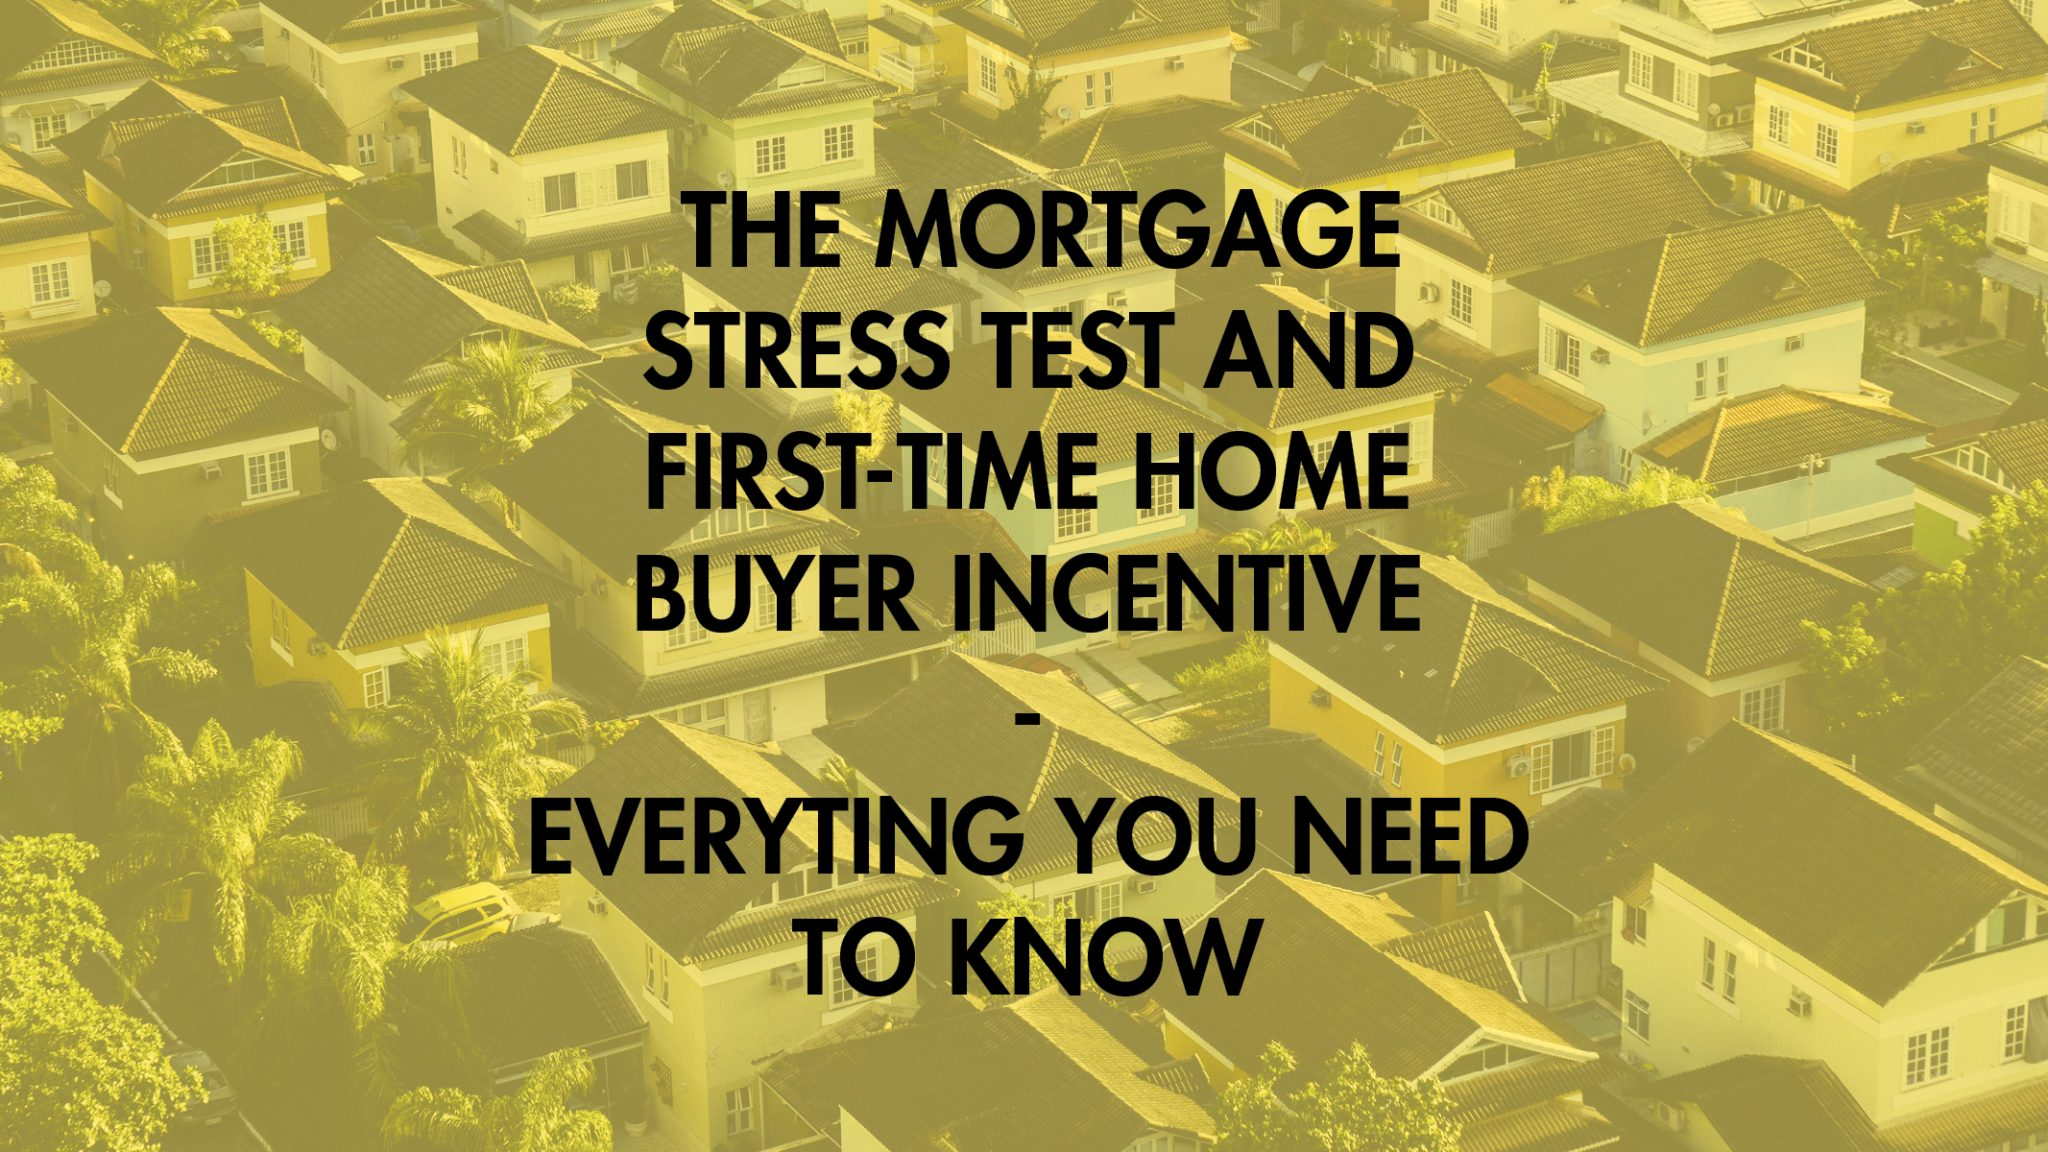 everything you needto know about the mortgage stress test and first time home buyer incentive